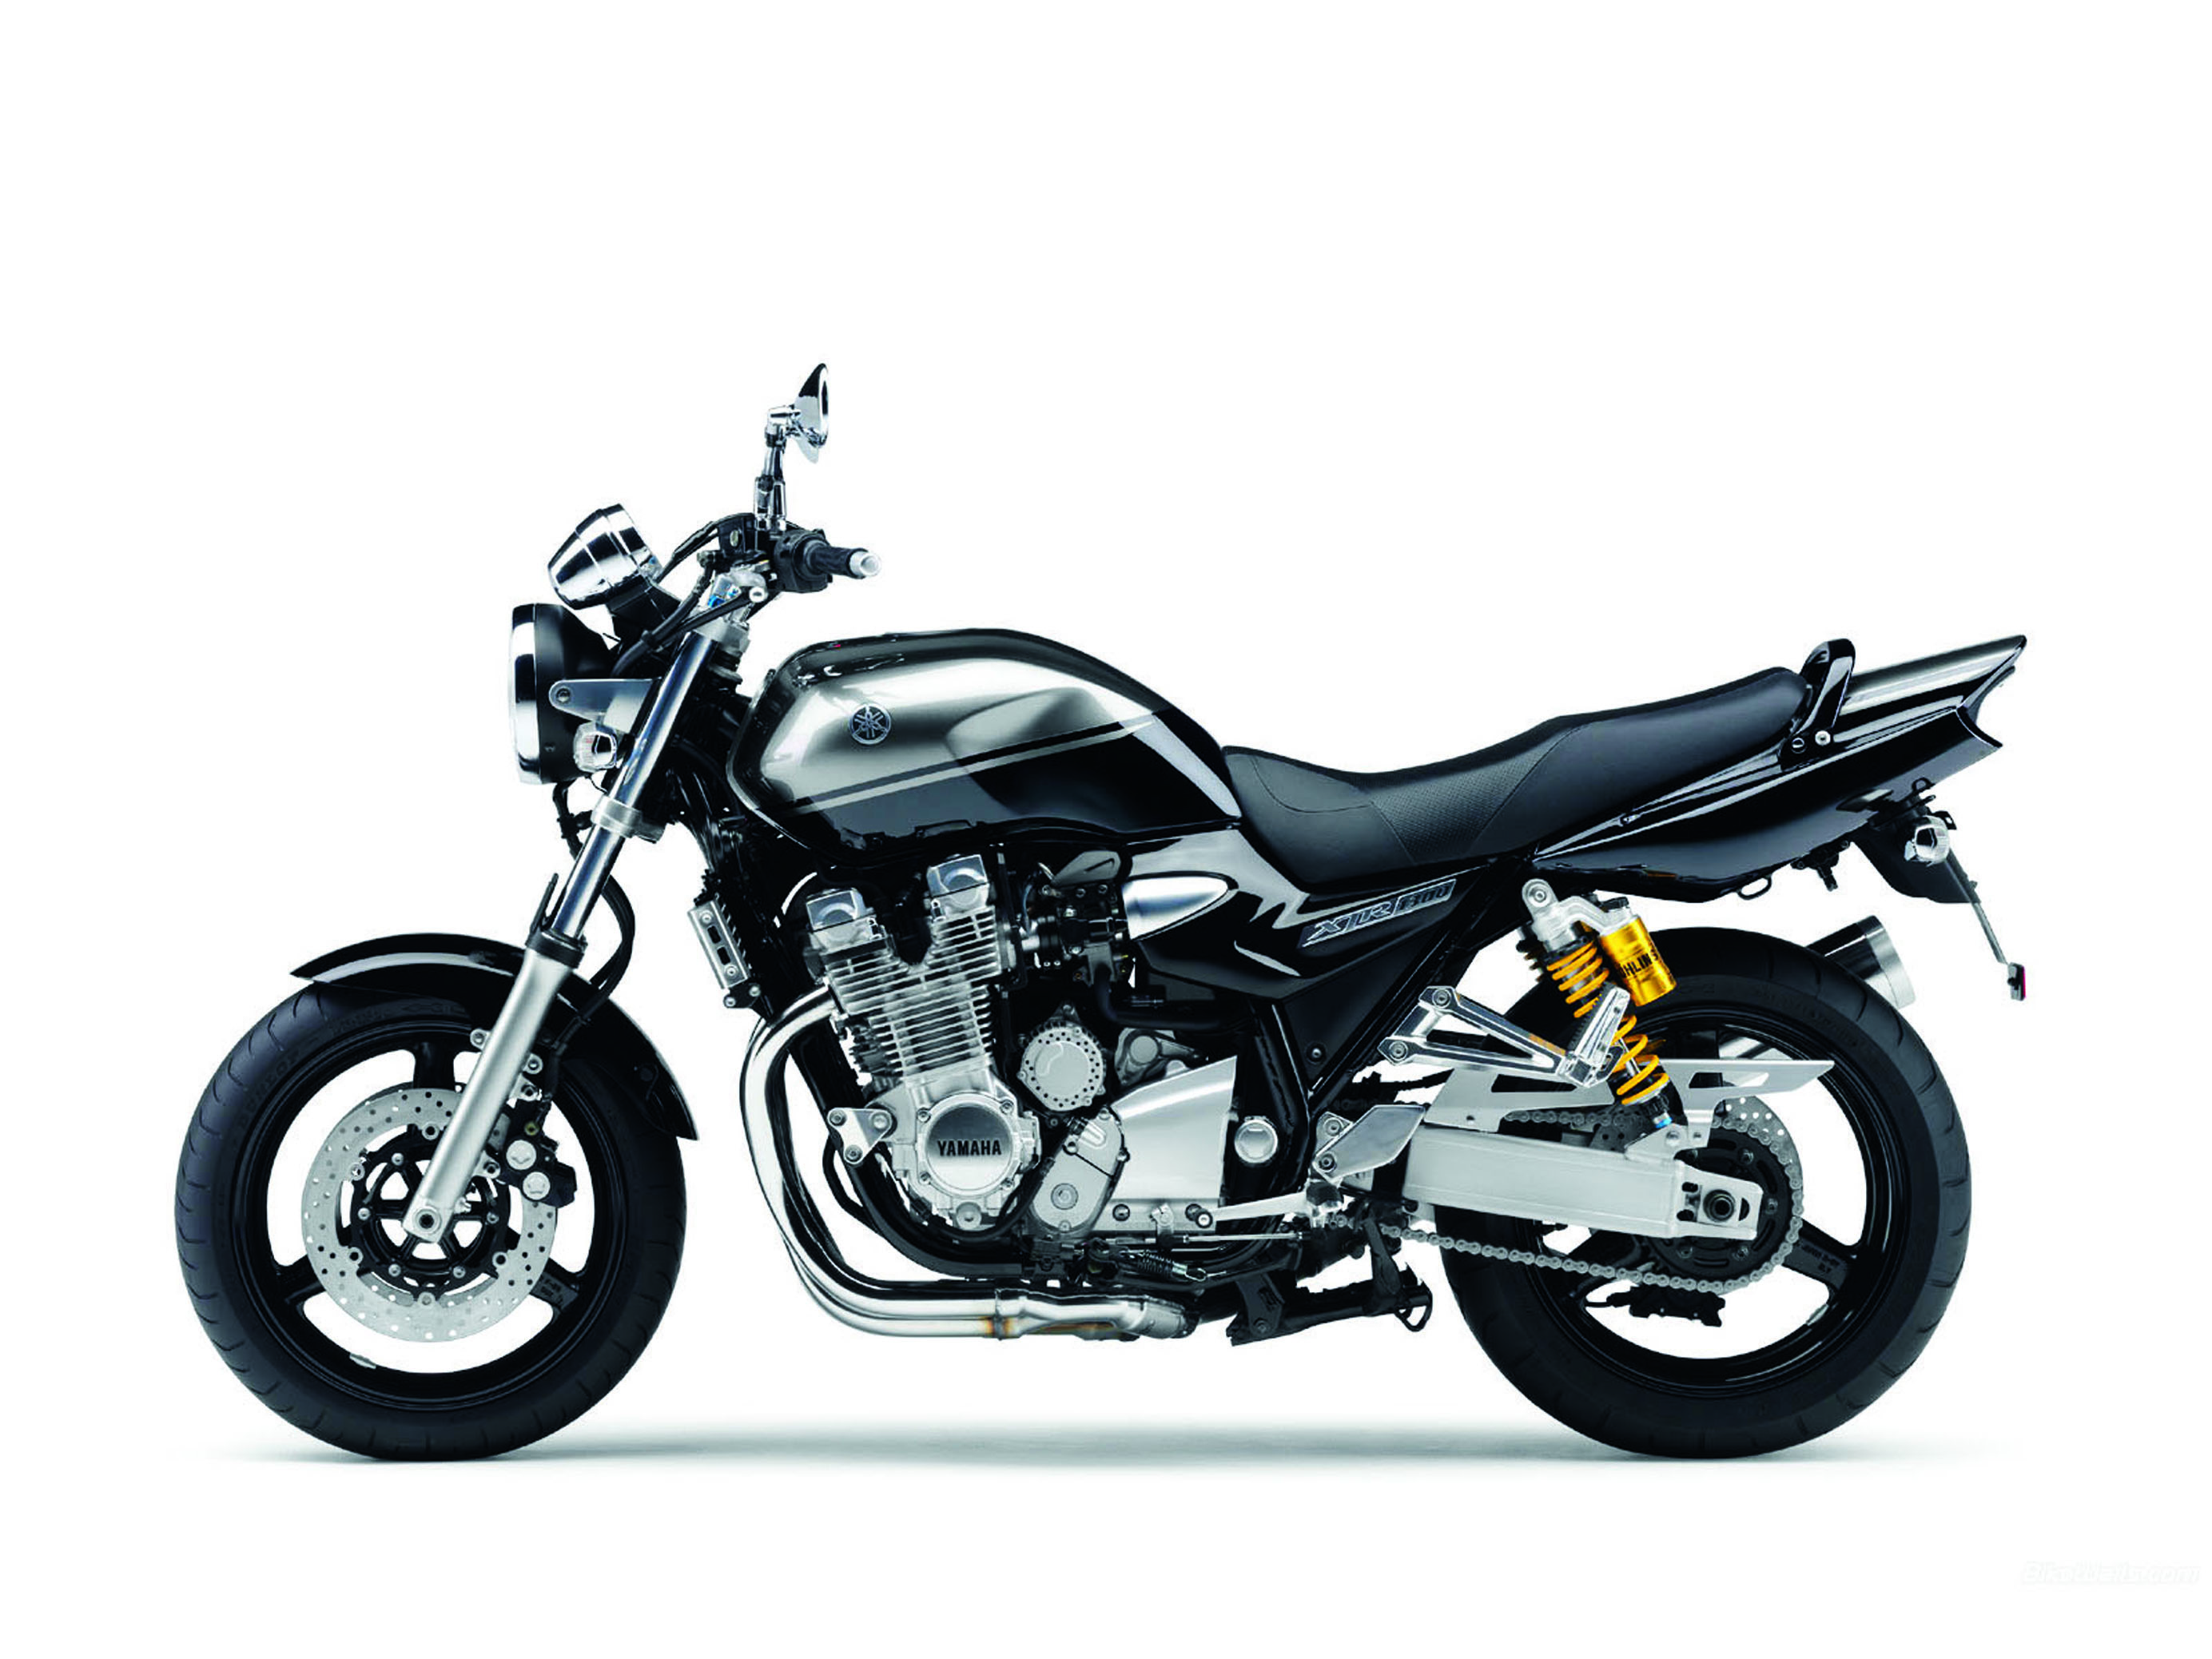 yamaha xjr1200 1300 buyers guide road rider magazine. Black Bedroom Furniture Sets. Home Design Ideas